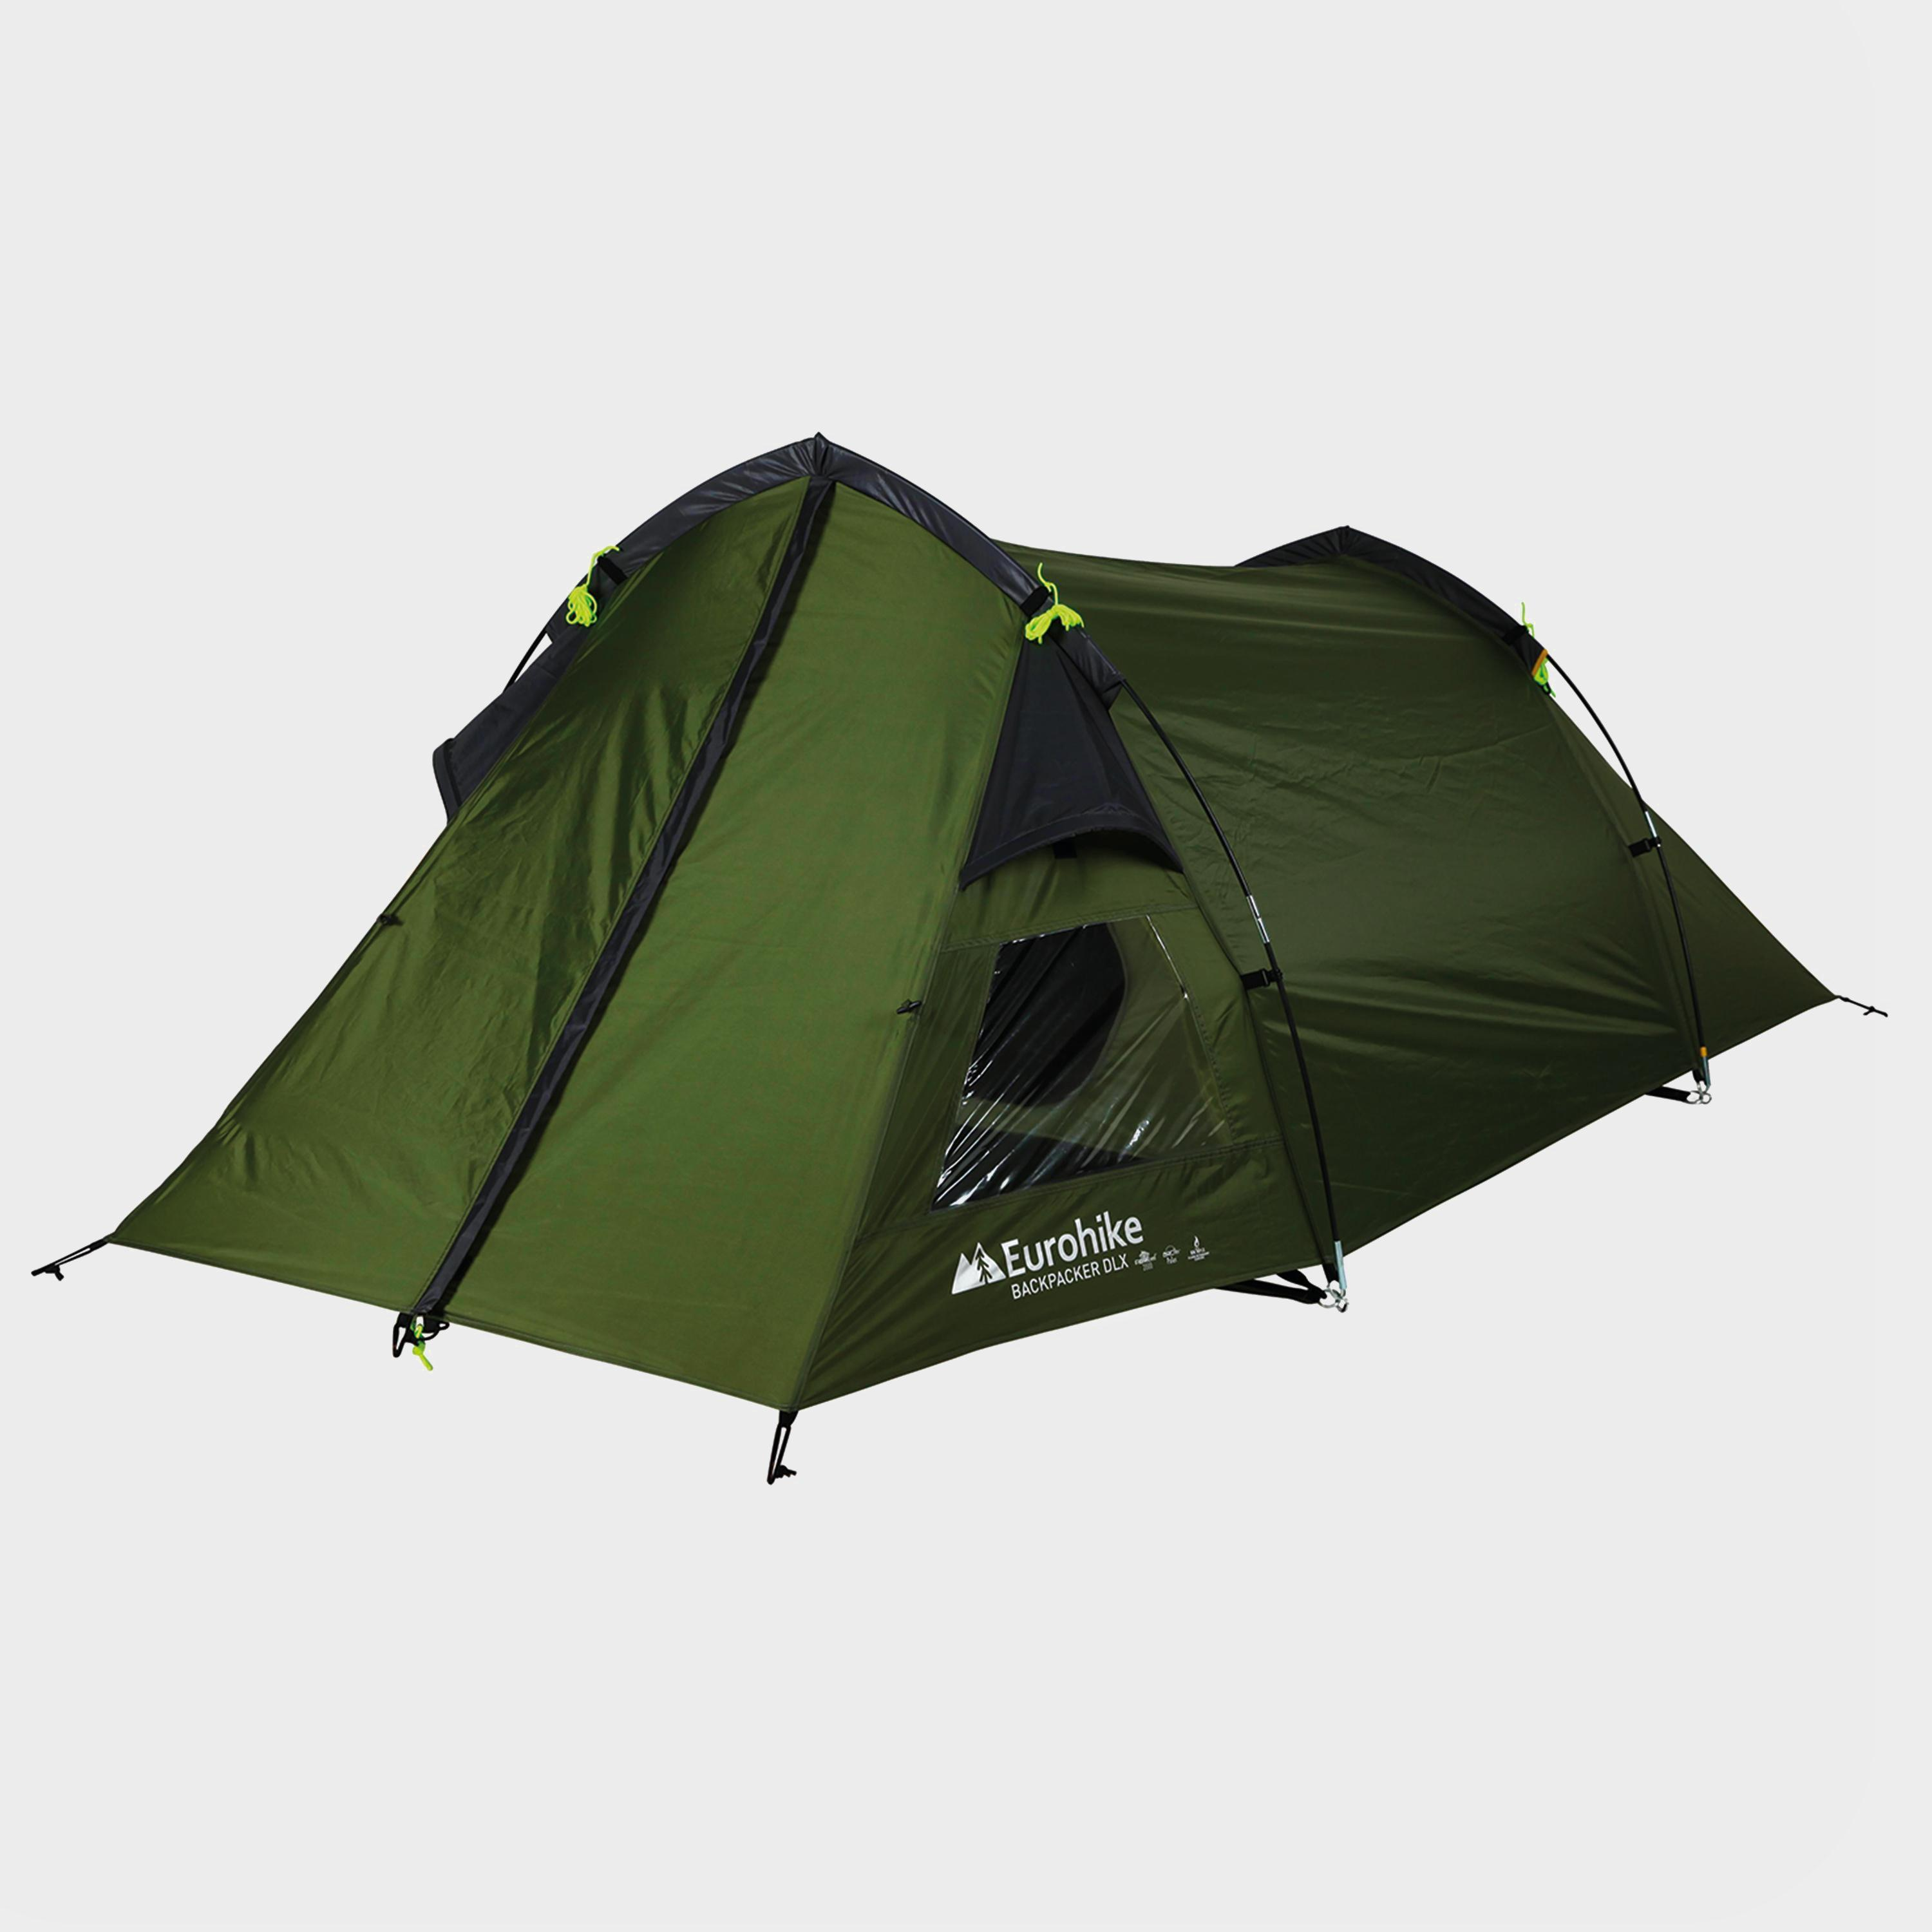 Green EUROHIKE Backpacker DLX 2 Man Tent & Equipment | Camping | Tents | 2 Person Tents